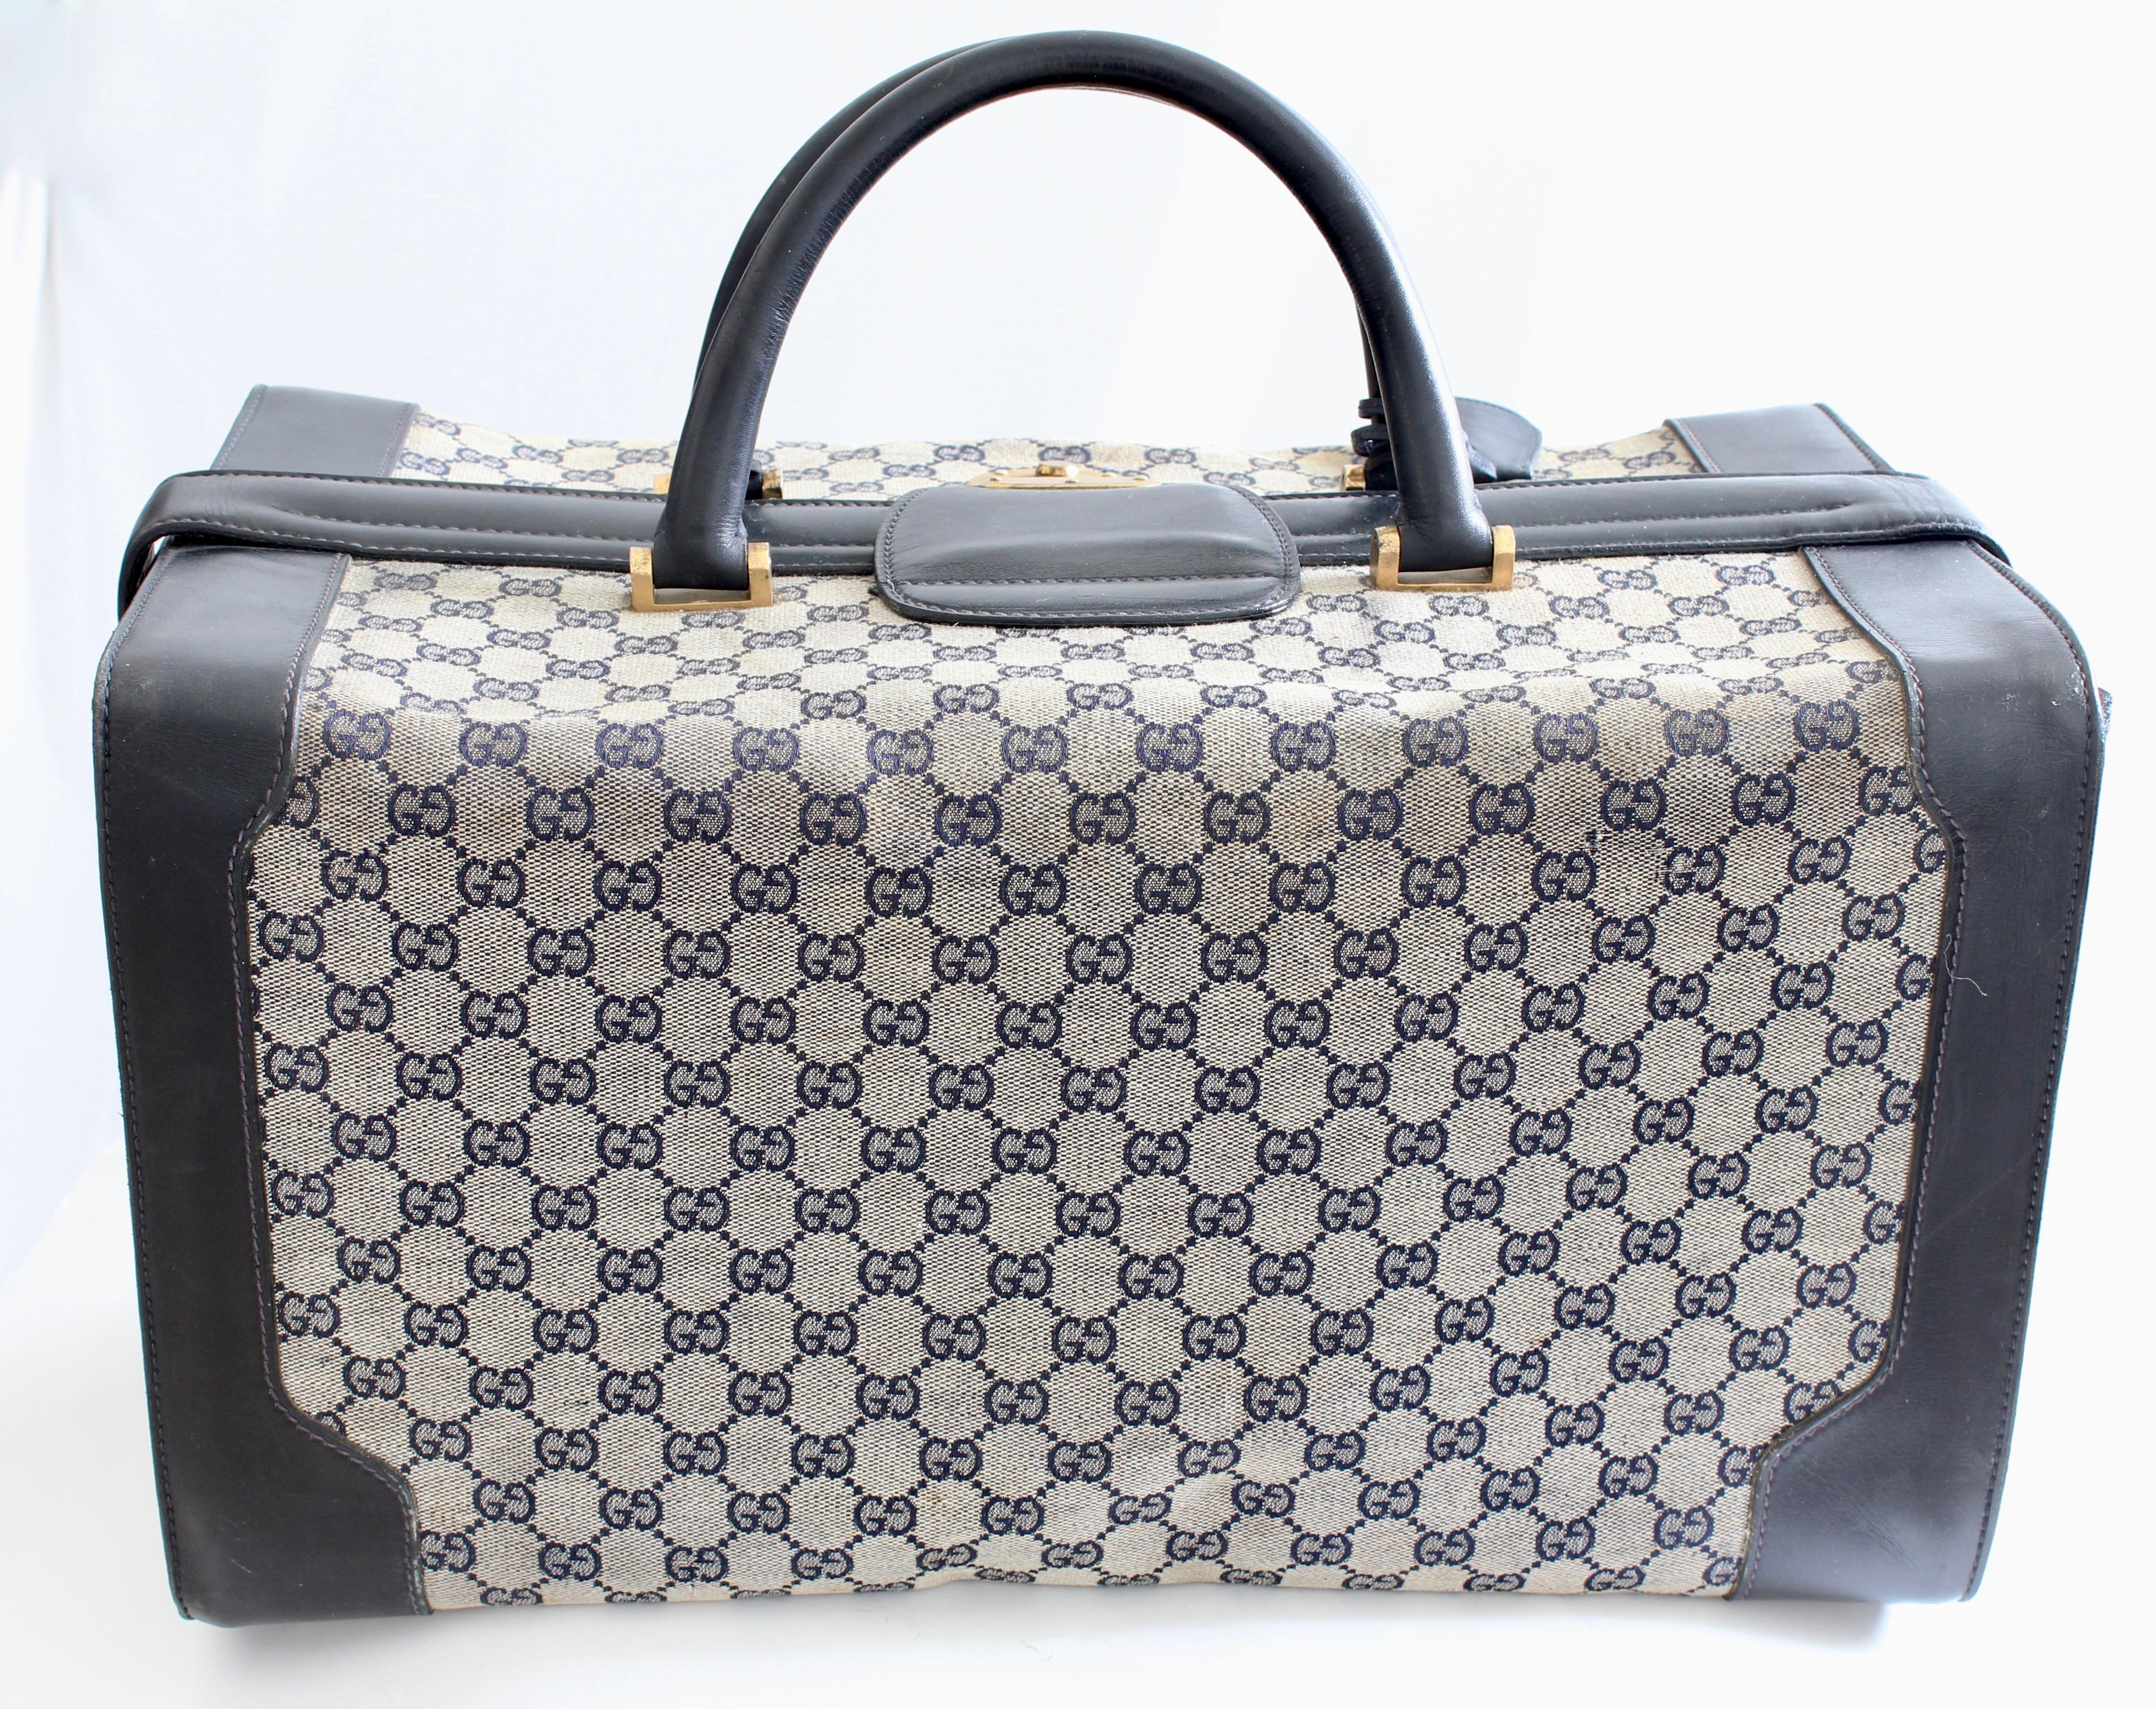 f4906143e Rare Gucci Doctors Bag Large Duffel Weekender Tote Vanity GG Canvas Leather  70s For Sale at 1stdibs